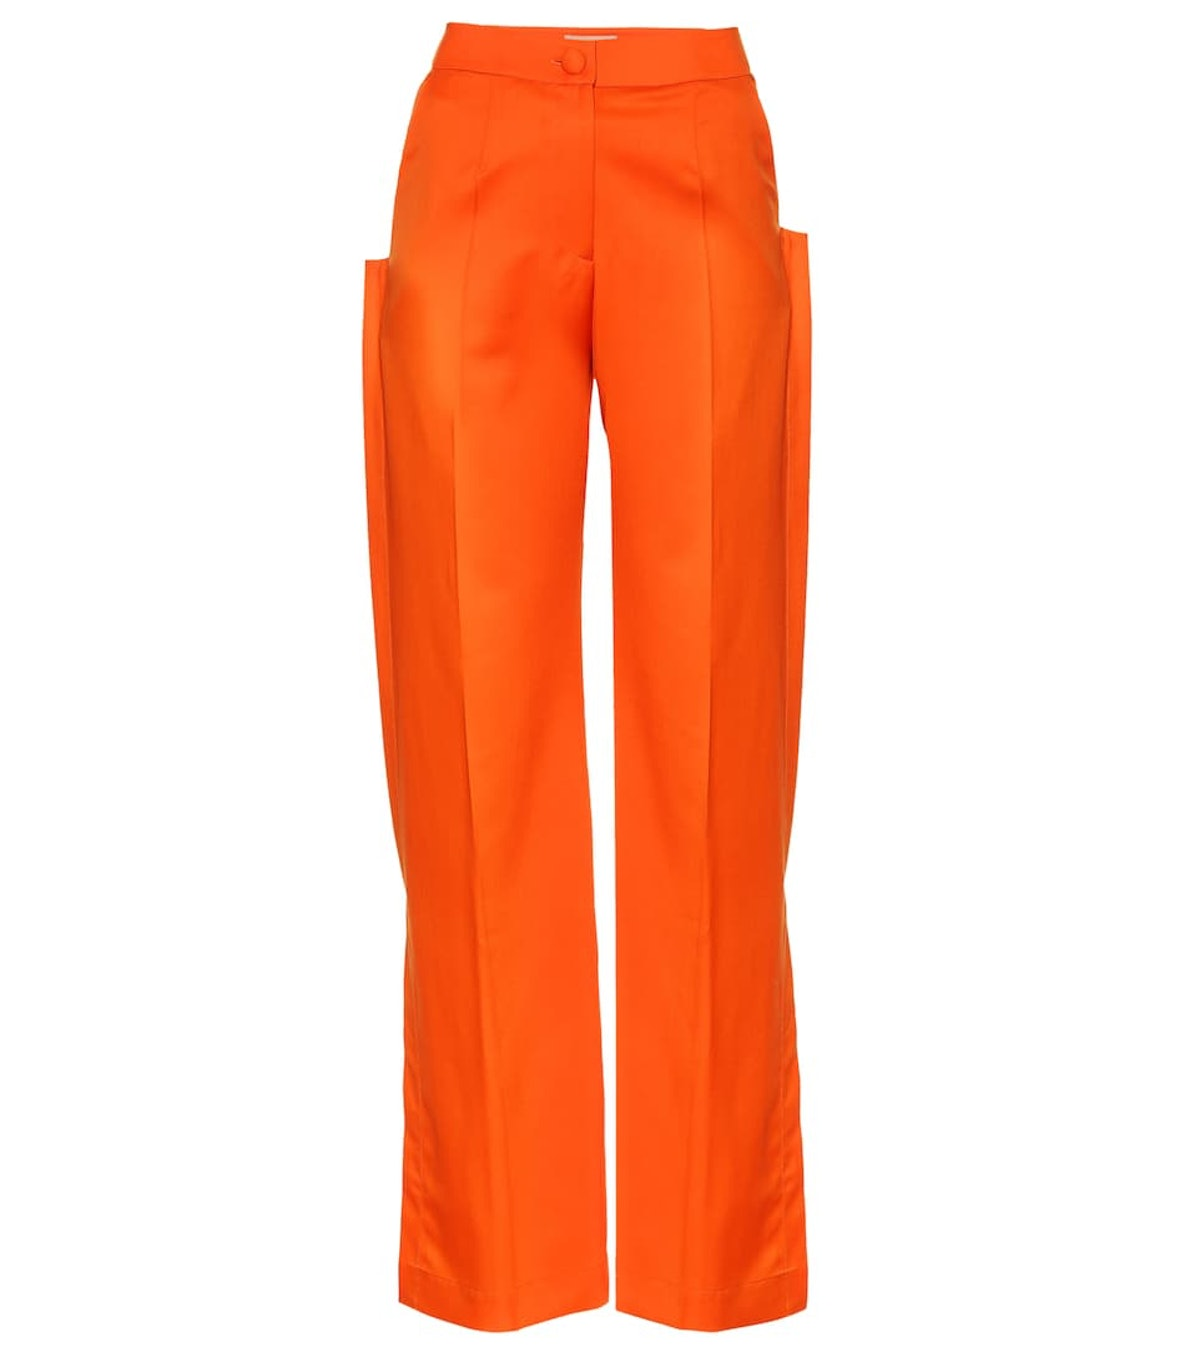 Orange high-rise flared wool pants from MATERIEL Tbilisi, available to shop on Mytheresa.